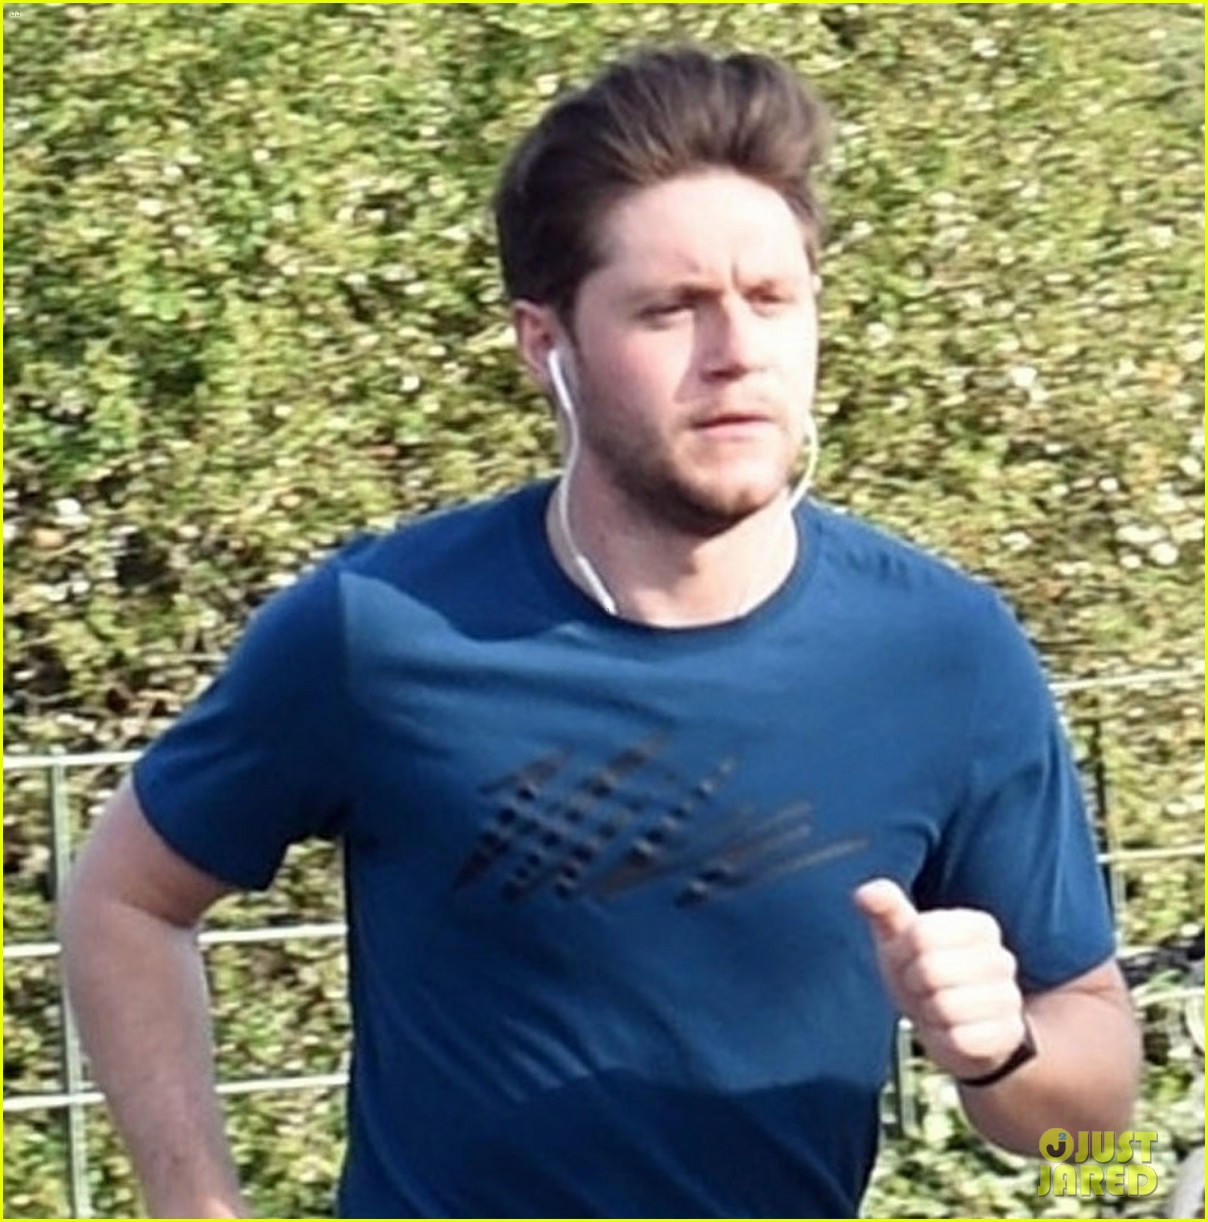 niall horan reveals what hes been doing while social distancing 03